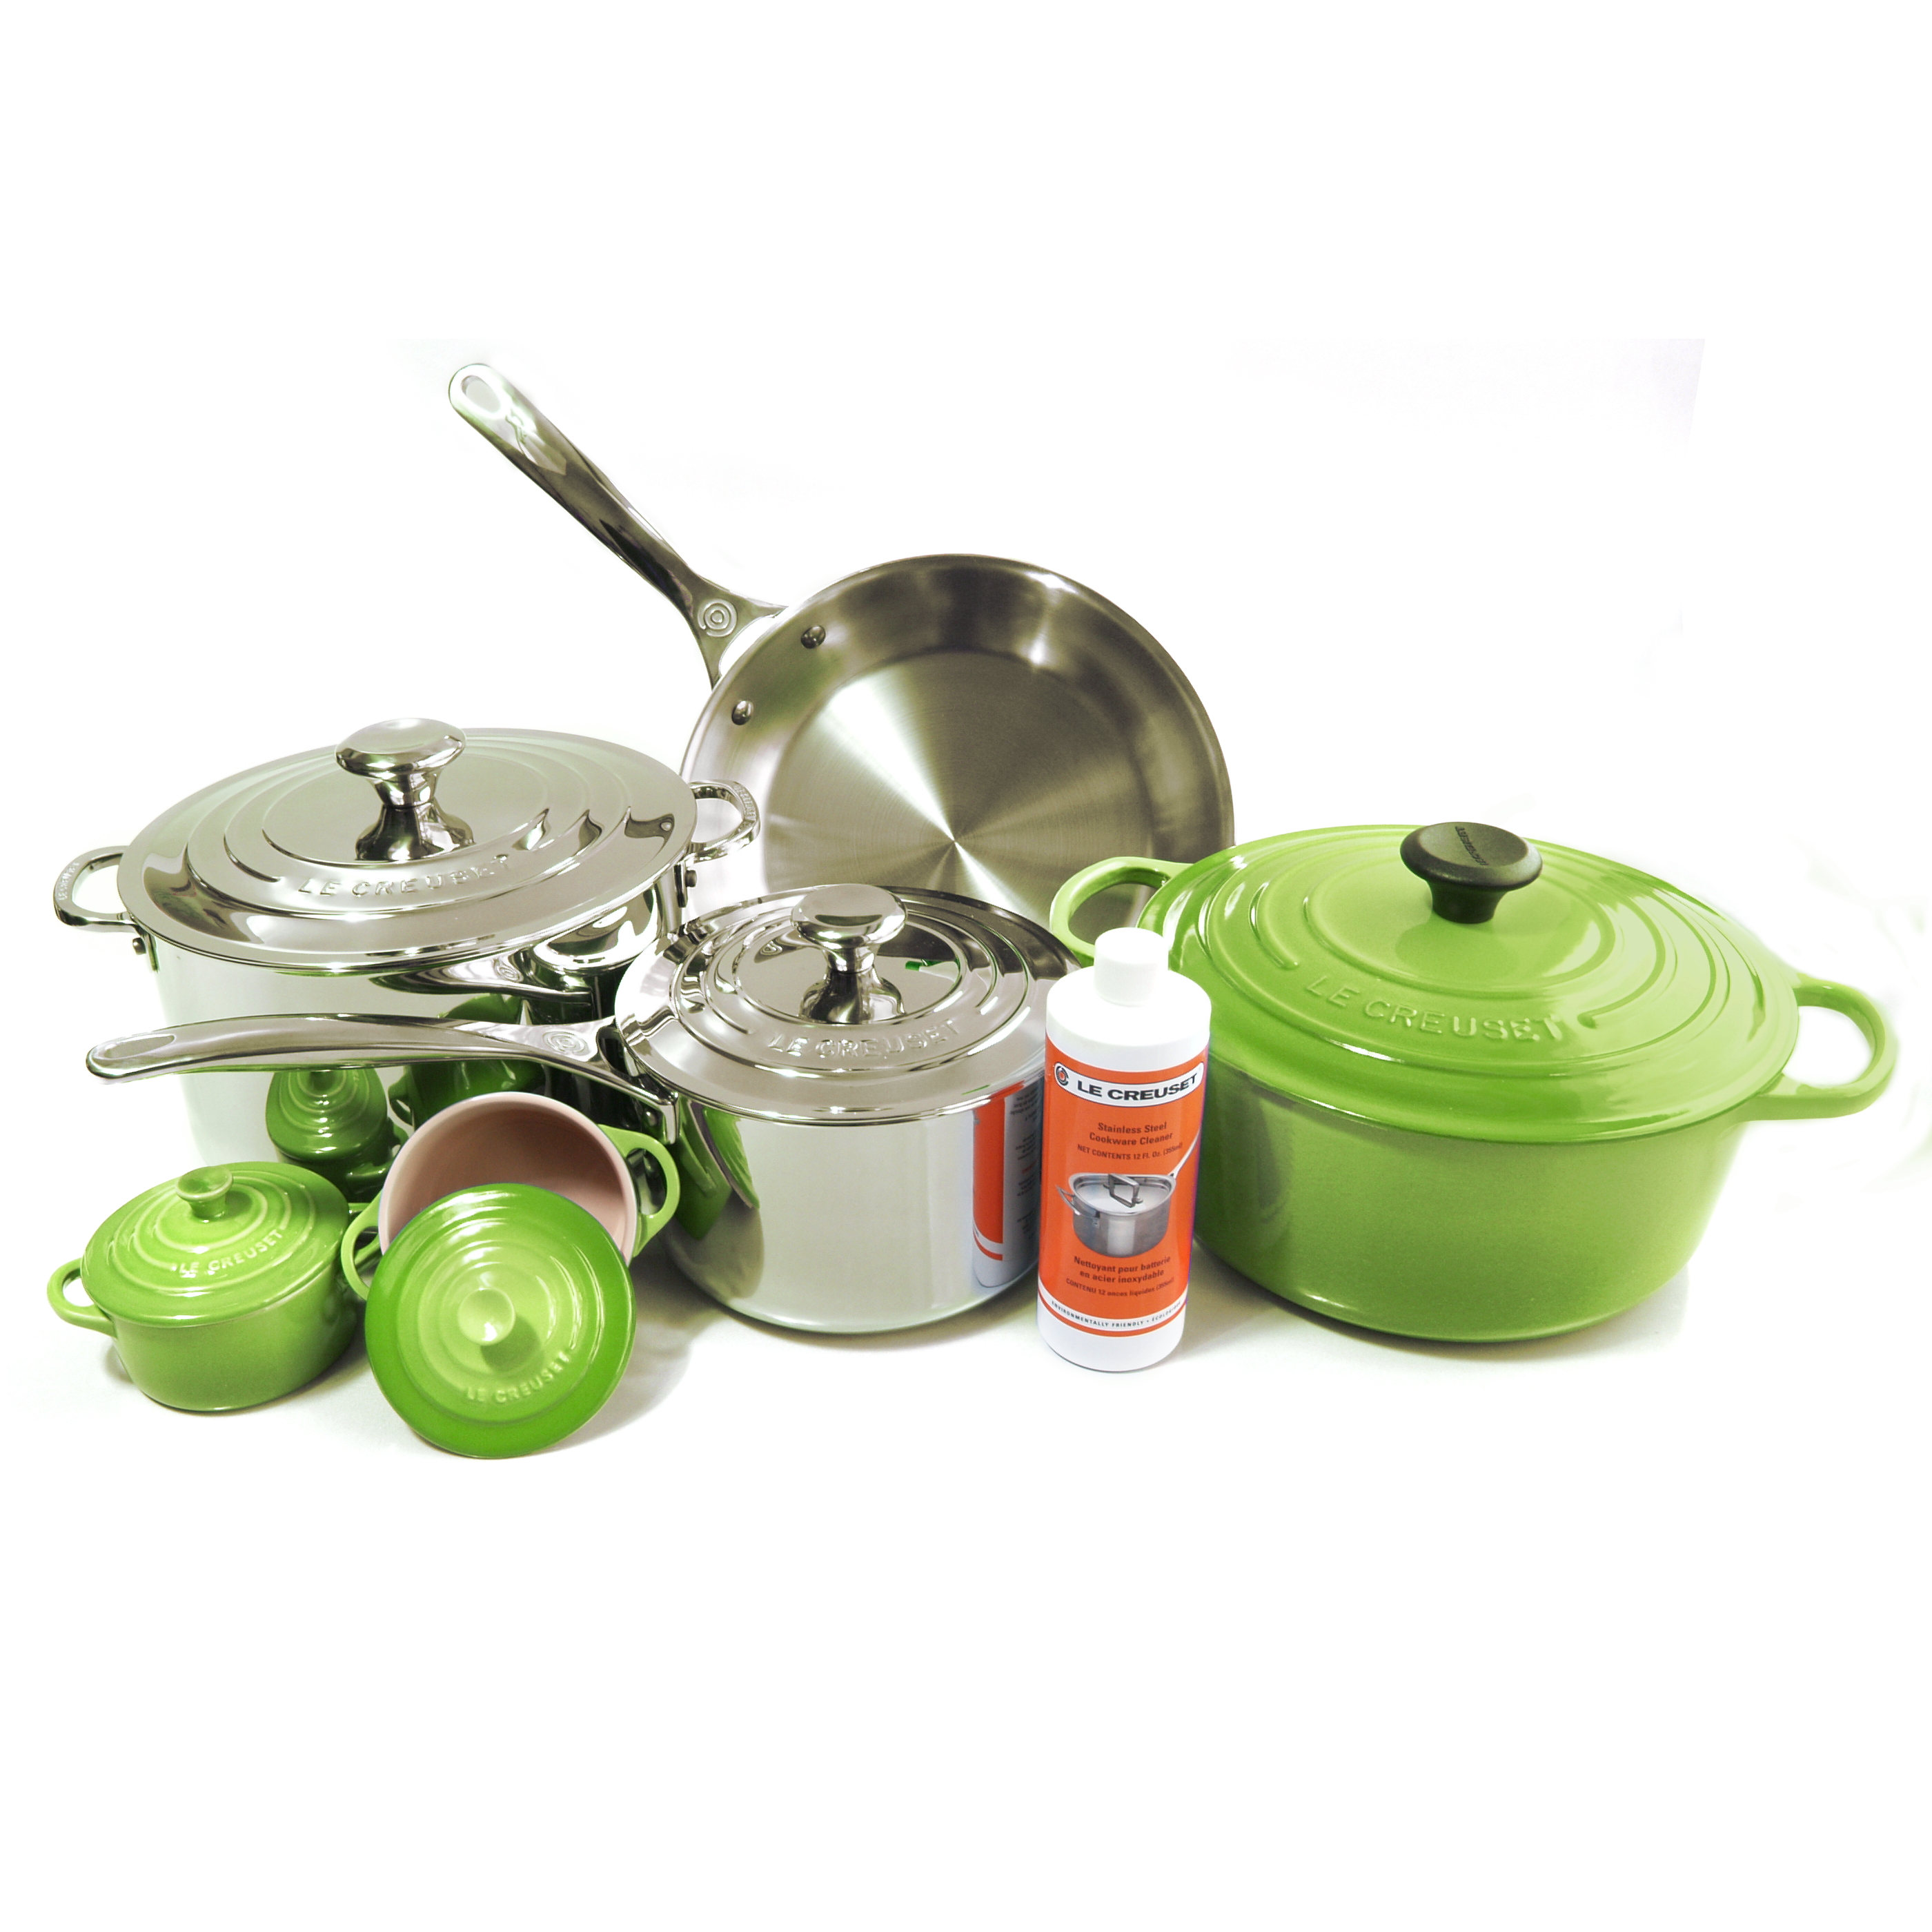 Le Creuset 11 Piece Palm Enameled Cast Iron & Tri-Ply Stainless Steel Cookware Set